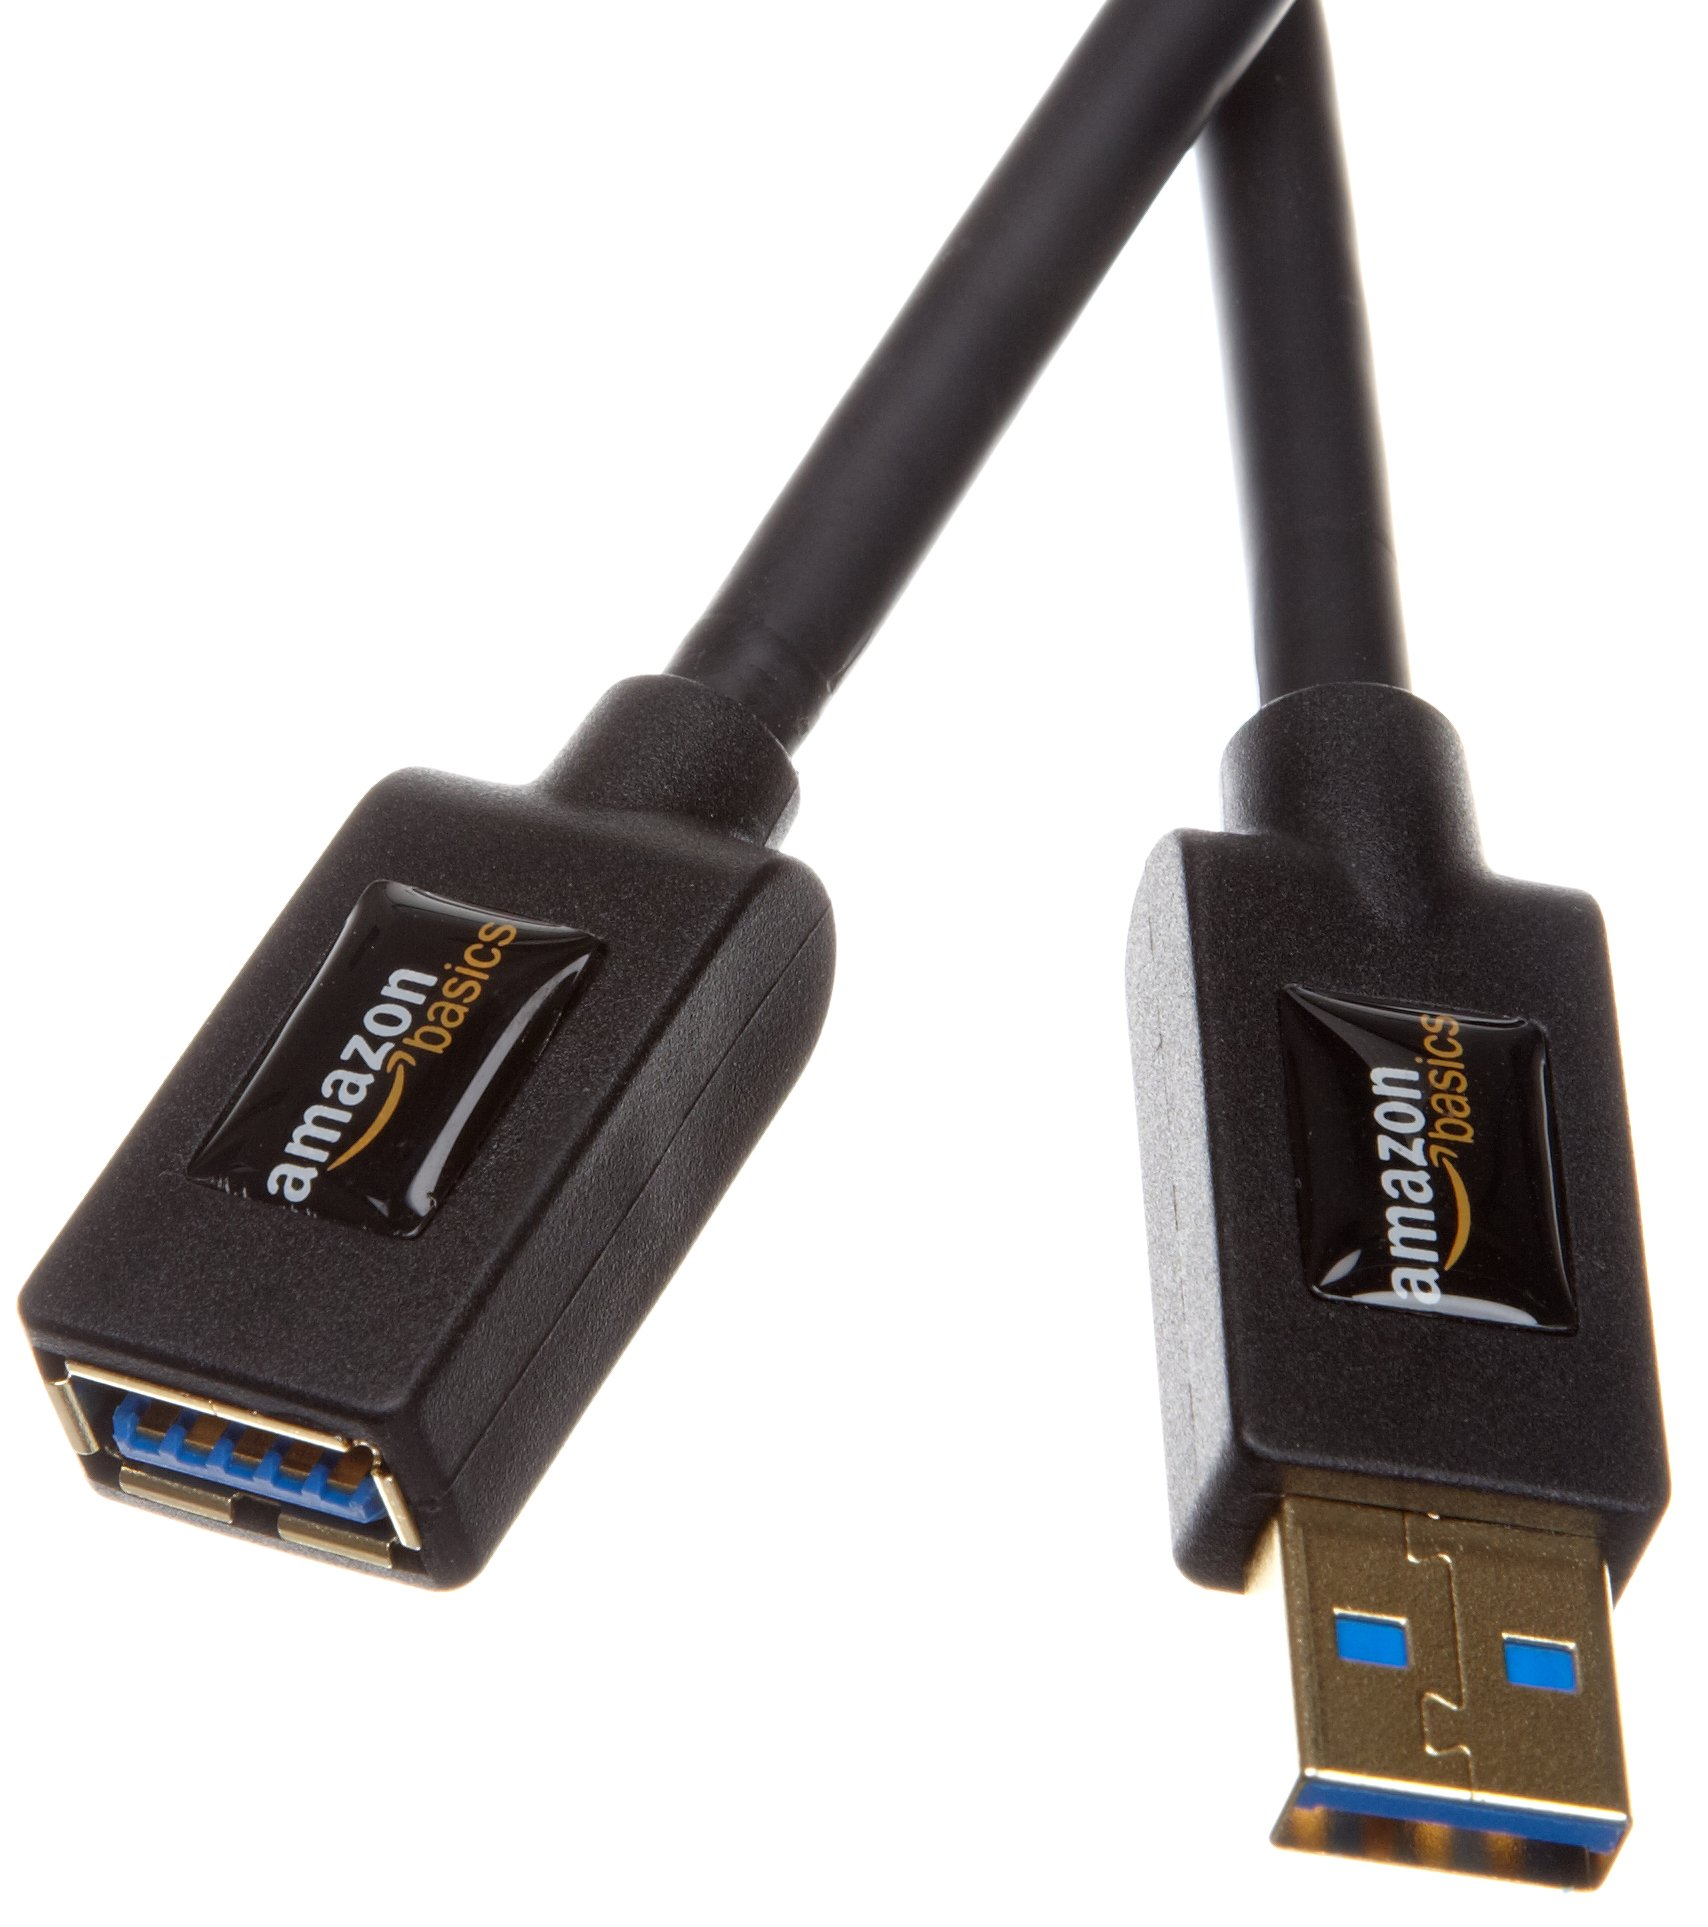 AmazonBasics USB 3.0 Extension Cable - A-Male to A-Female - 3.3 Feet (1 Meter),Black product image